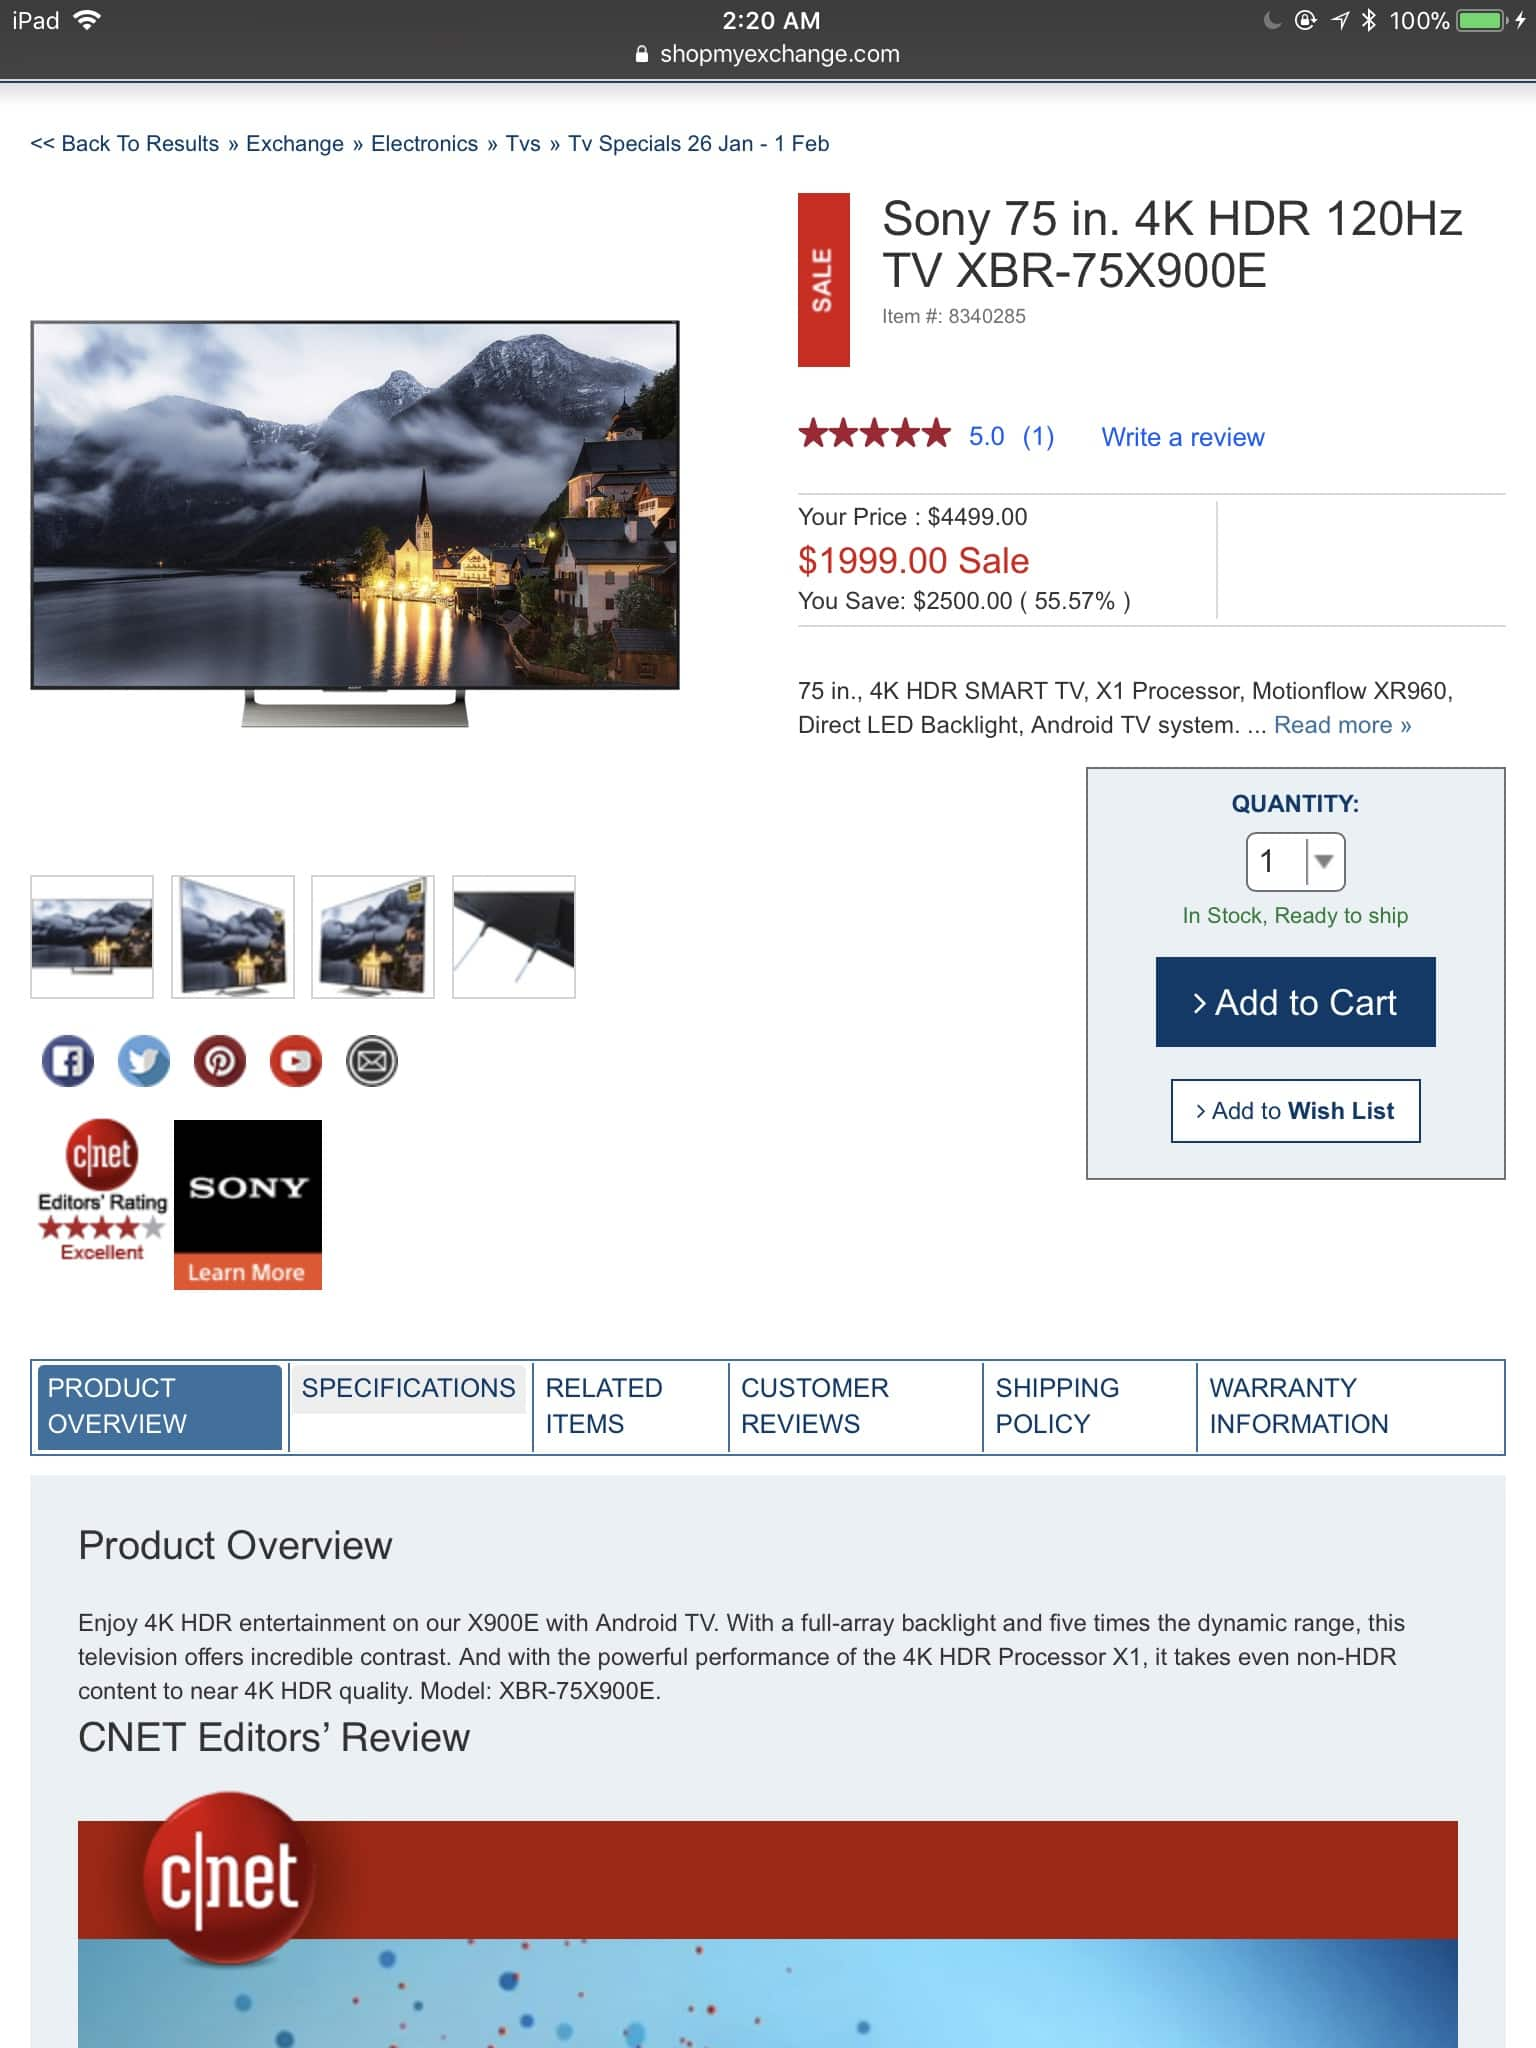 AAFES (Military and Veterans Only) Sony 75 in. 4K TV  XBR-75X900E $1999 free shipping no tax